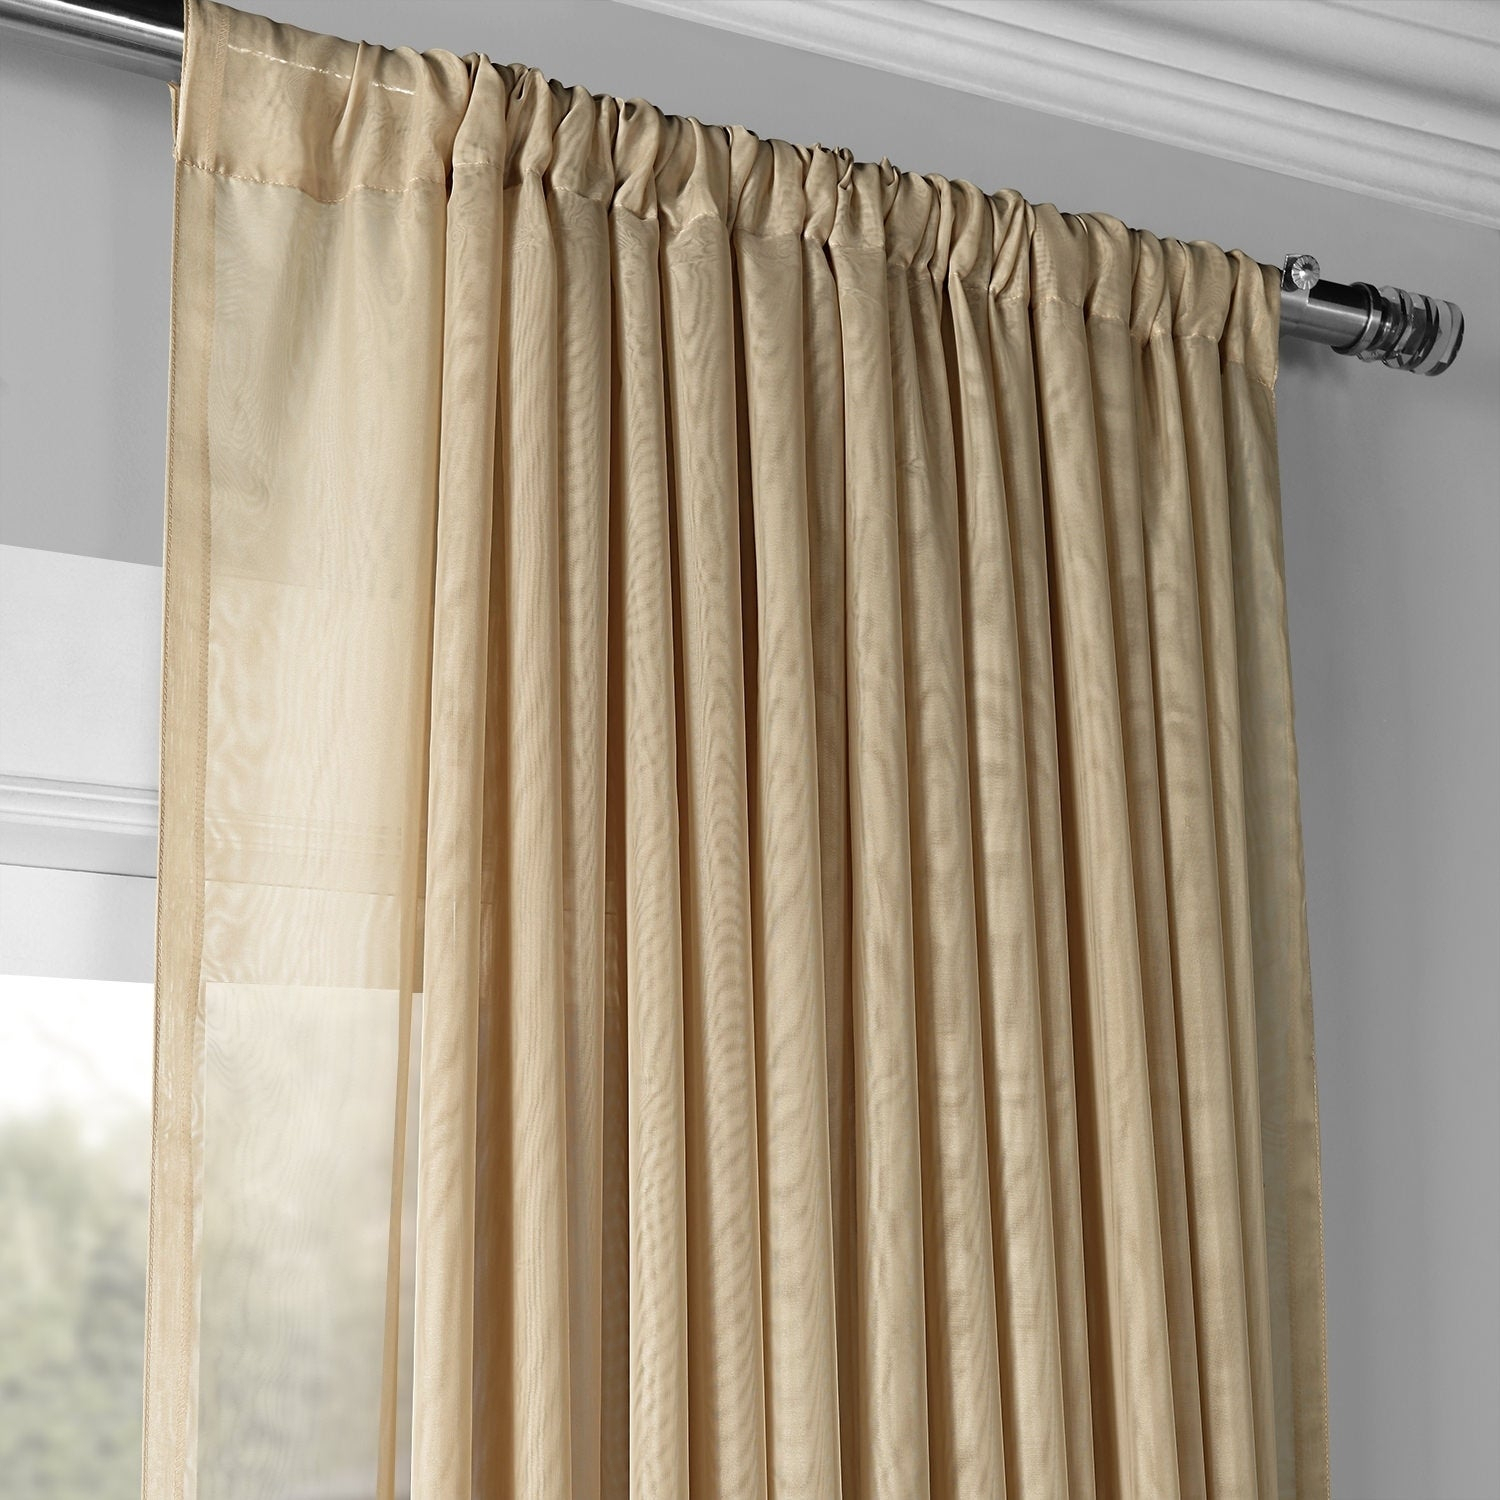 Exclusive Fabrics Signature Extrawide Double Layer Sheer Curtain Panel Throughout Signature White Double Layer Sheer Curtain Panels (View 11 of 30)